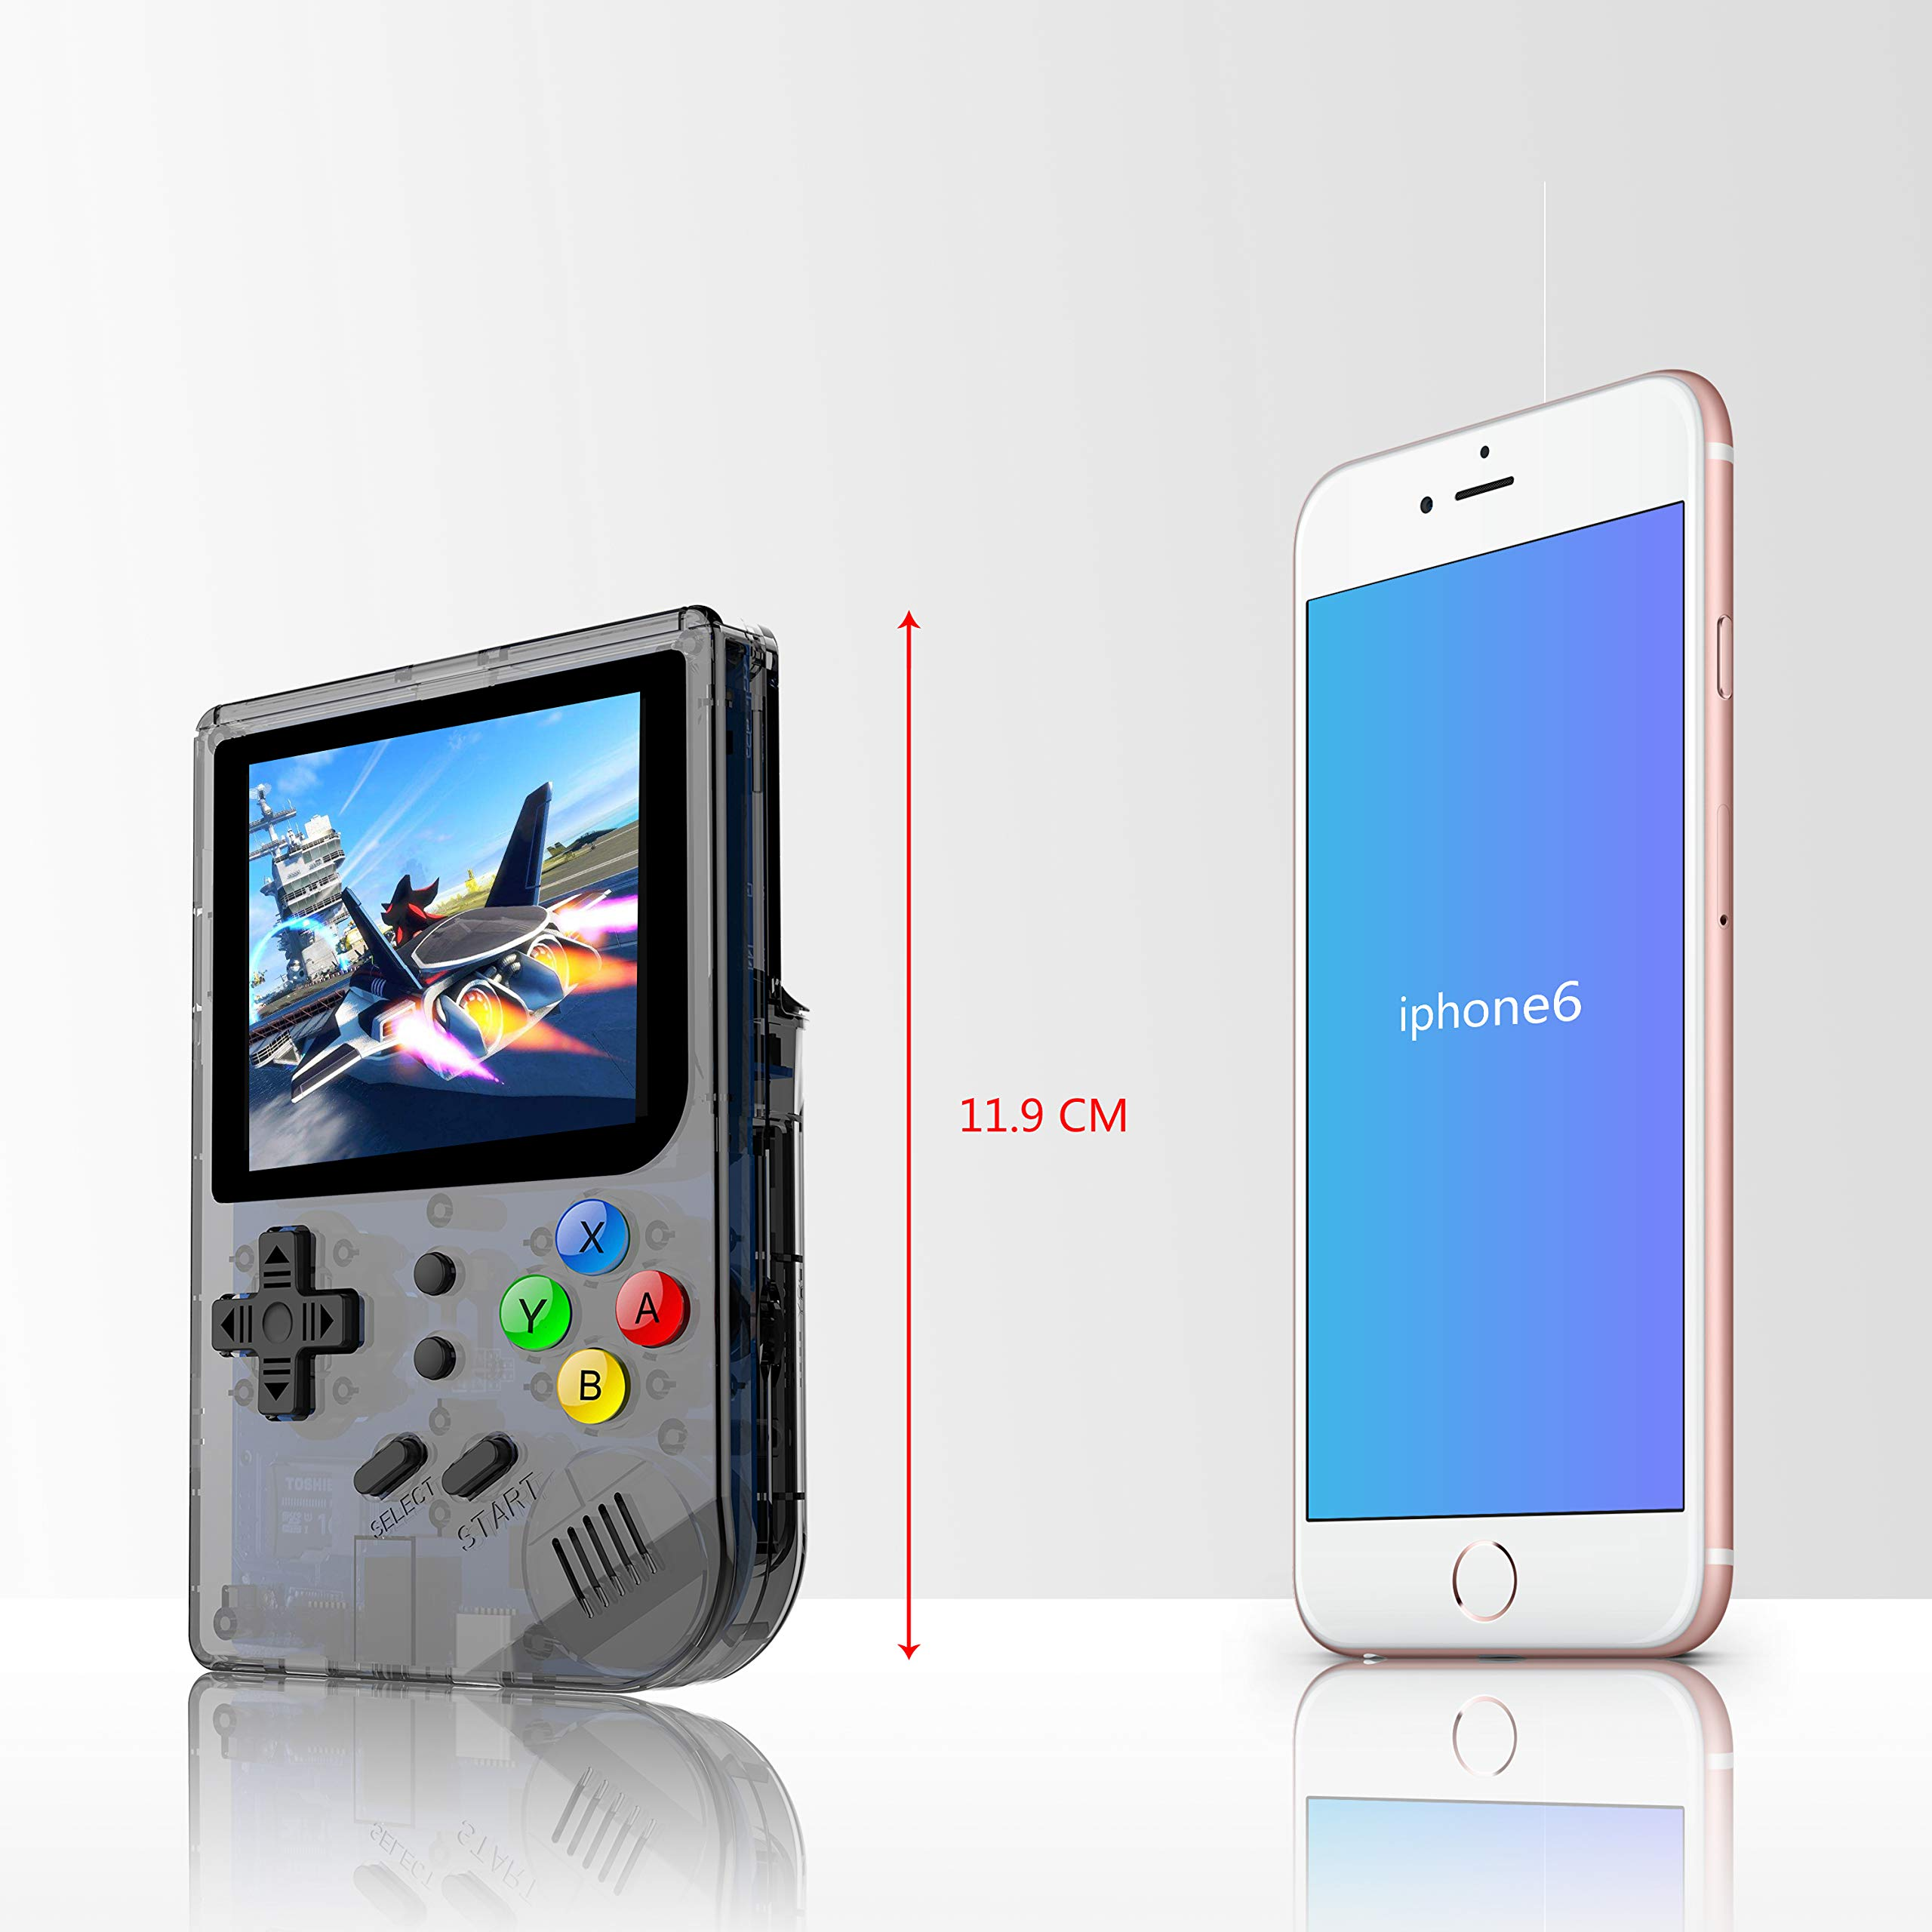 BAORUITENG 2019 Upgraded Opening Linux Tony System Handheld Game Console , Retro Game Console with 32G TF Card Built in 3007 Classic Games, Portable Video Game Console of 3 Inch IPS Screen (Black) by BAORUITENG (Image #1)